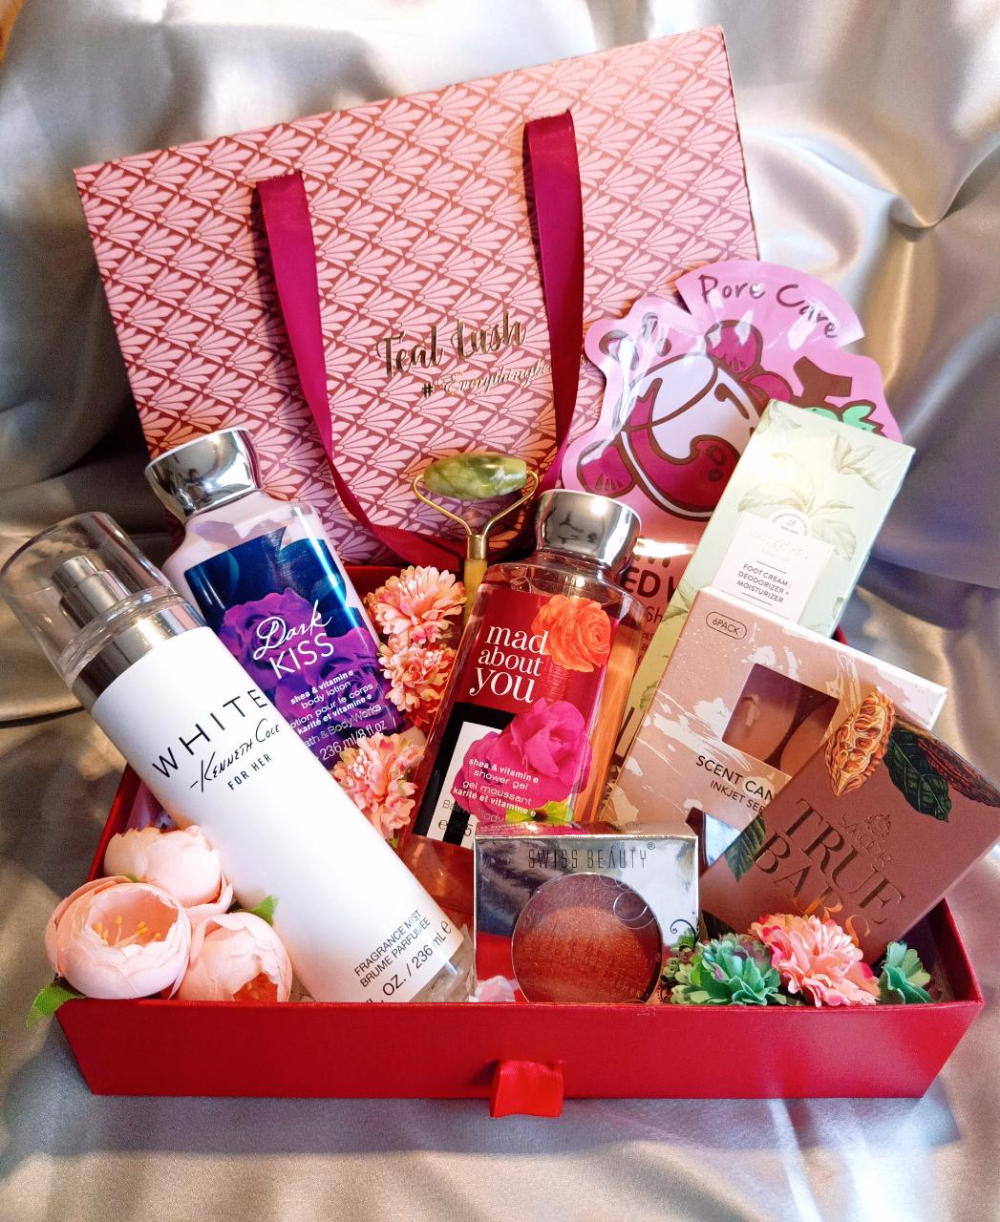 Head To Teal Lush In Mumbai For Some Amazing Wedding Gift Hampers In 2020 Wedding Gift Hampers Gift Hampers Amazing Wedding Gift